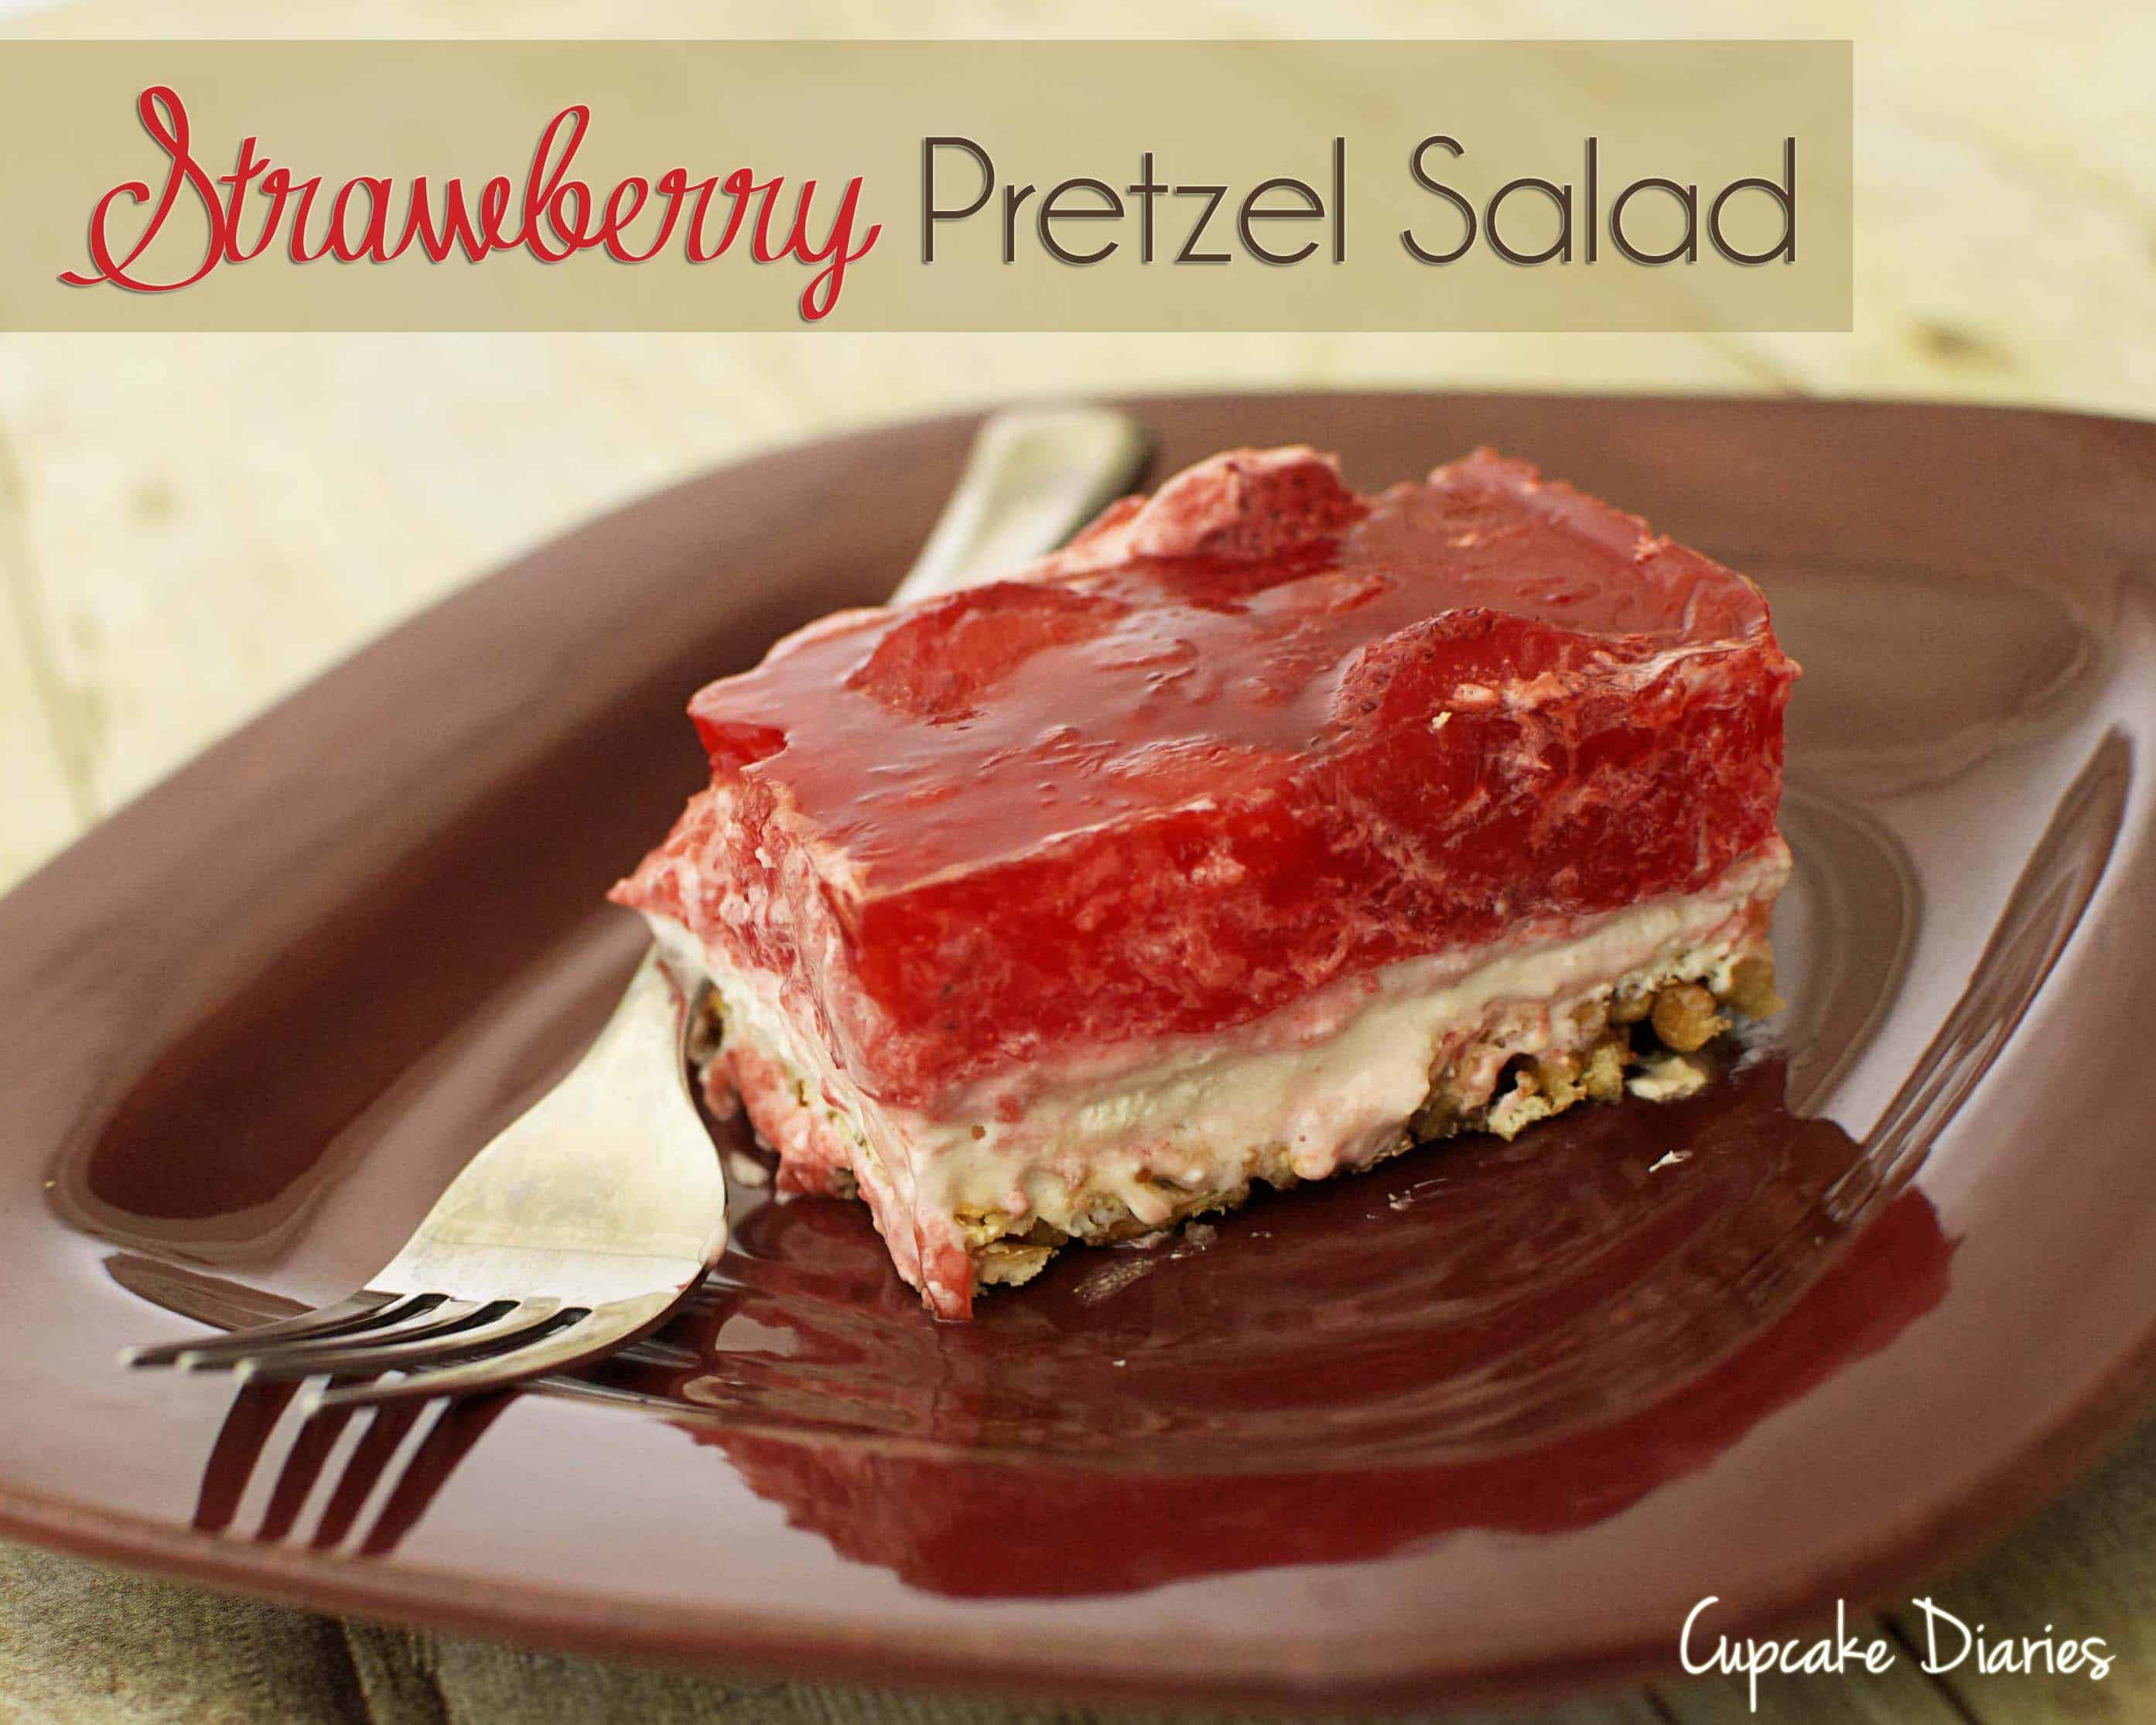 Strawberry Pretzel Salad - Cupcake Diaries